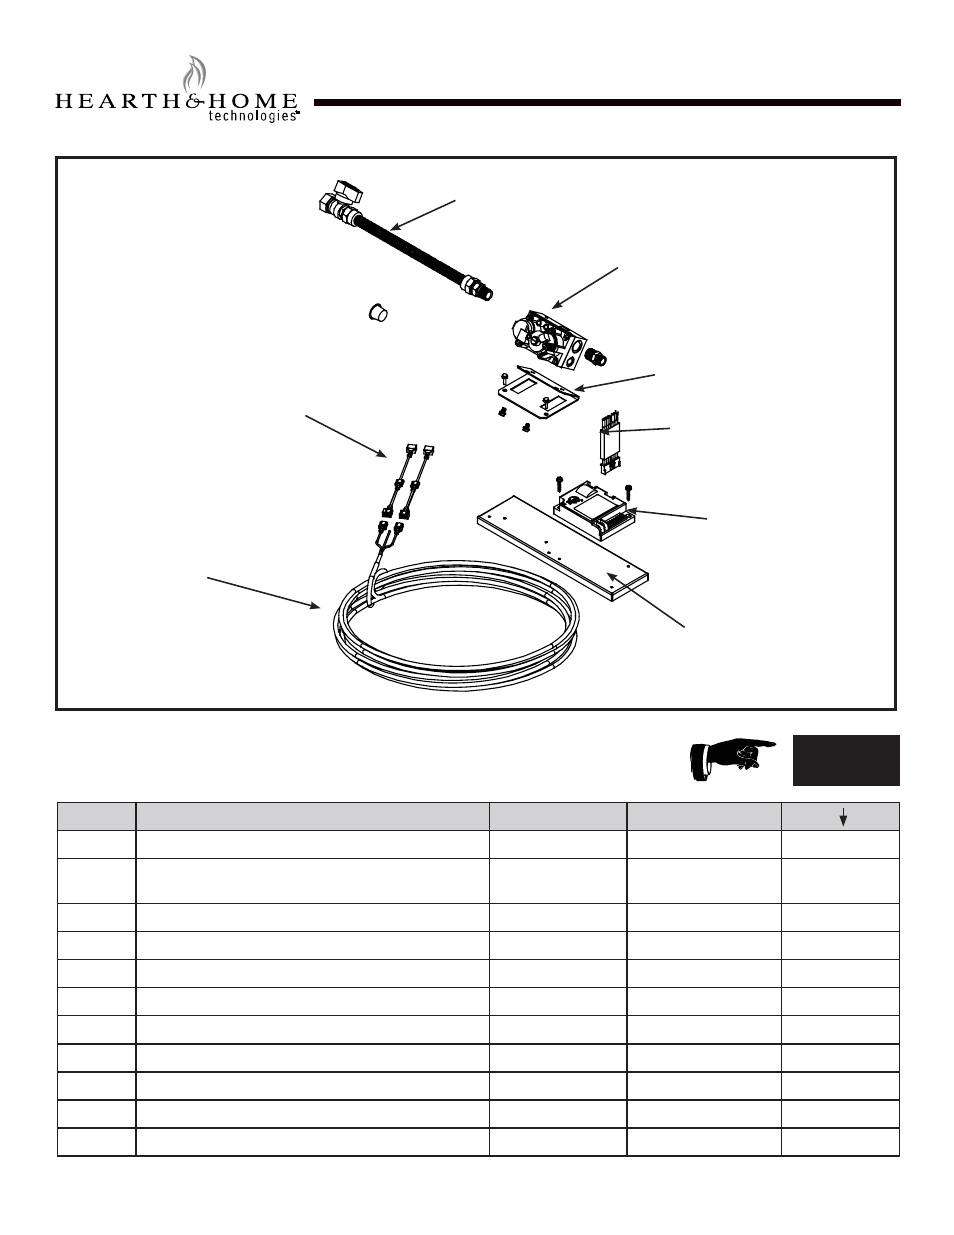 Husqvarna 61 Chainsaw 1997 Parts Diagram Page 2